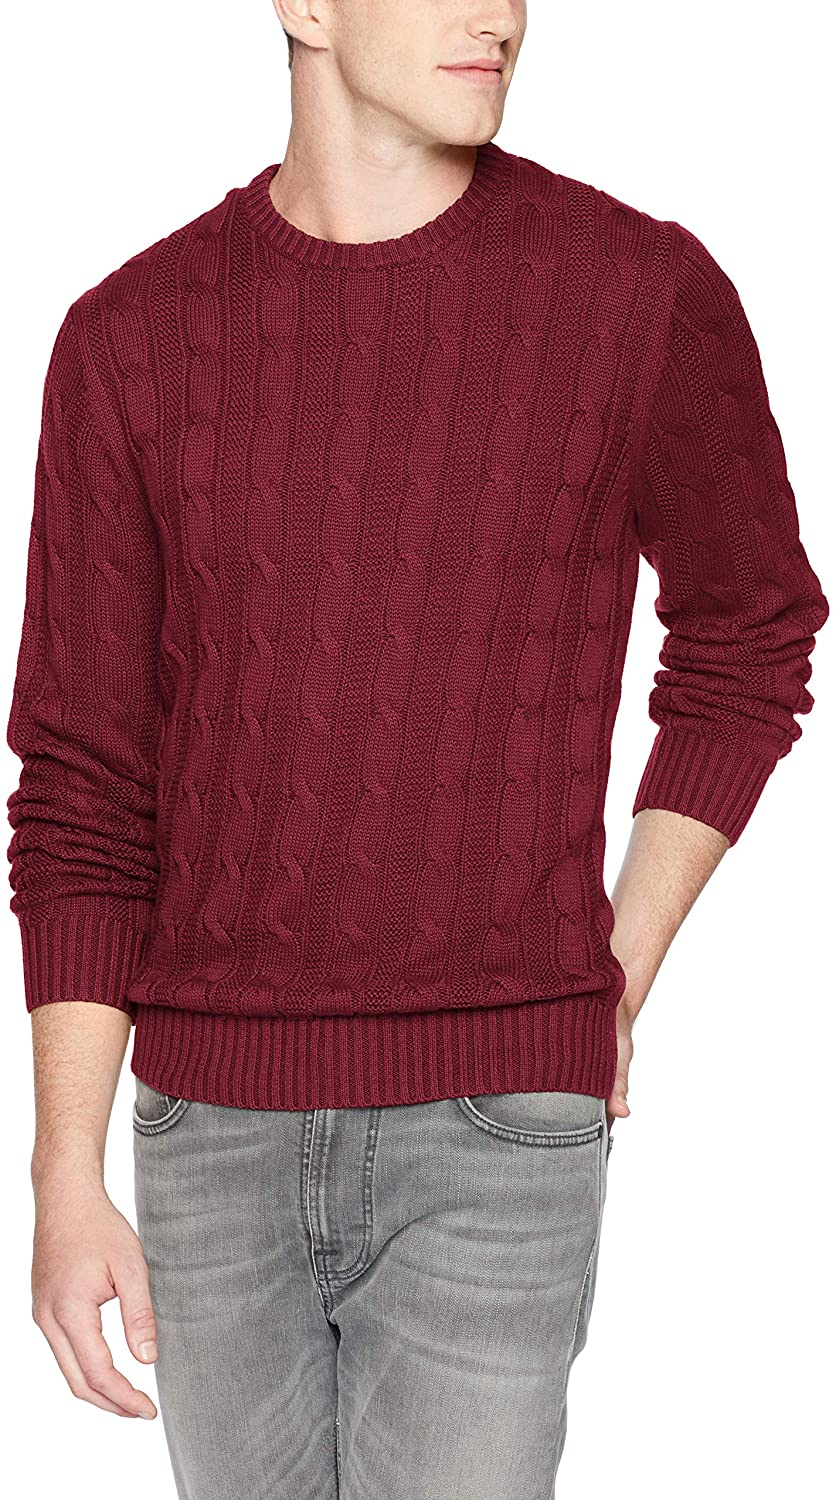 Goodthreads Mens Soft Cotton Cable Stitch Crewneck Long Sleeve Sweatshirt Brand